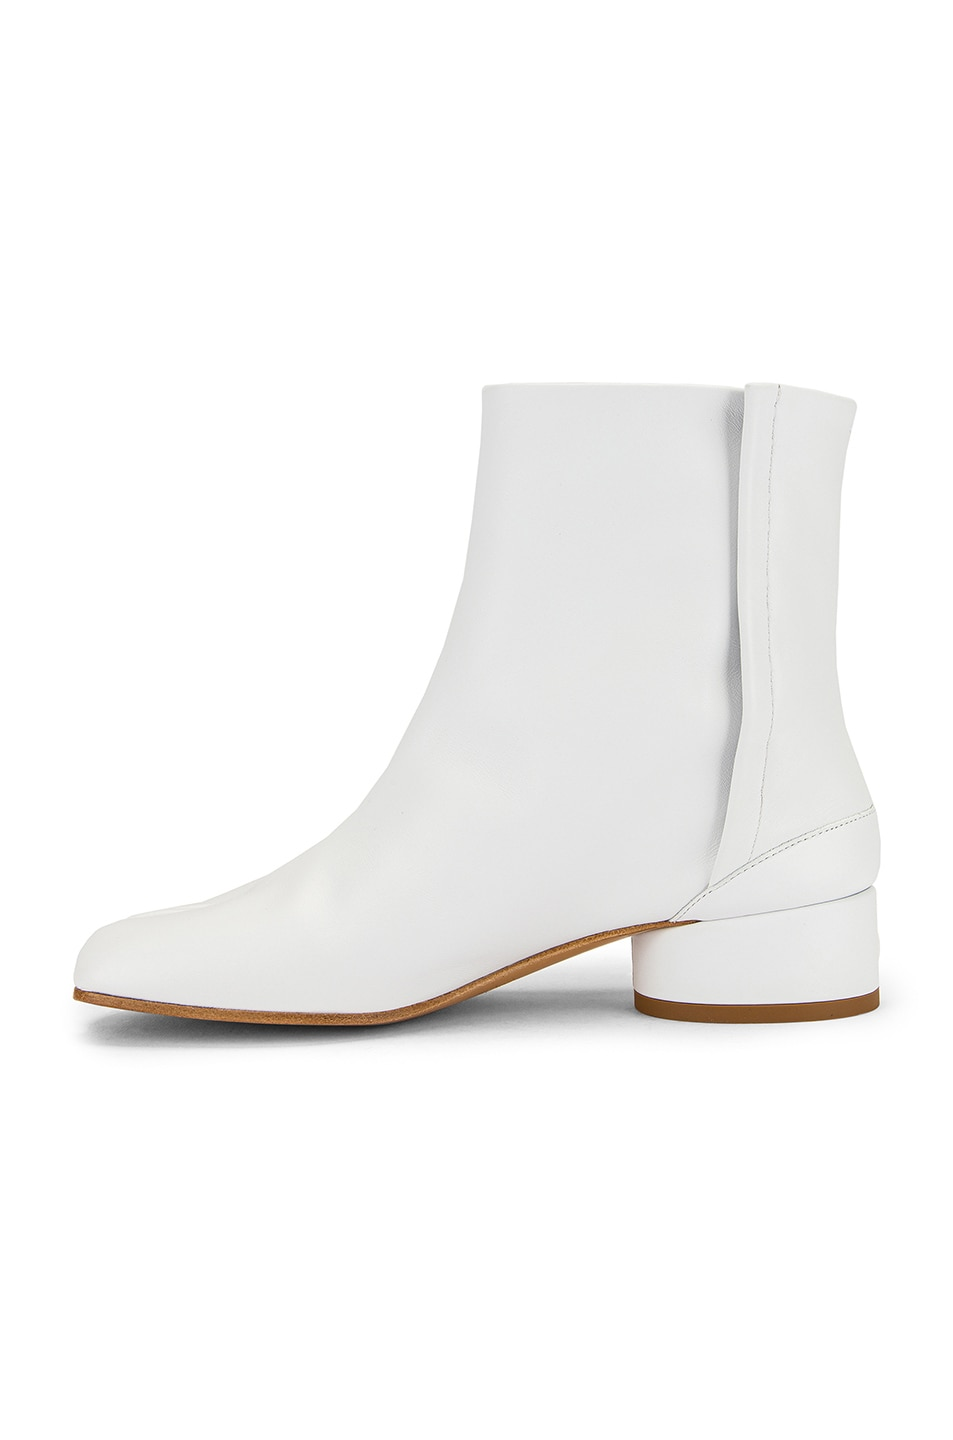 Image 5 of Maison Margiela Tabi Boots in White